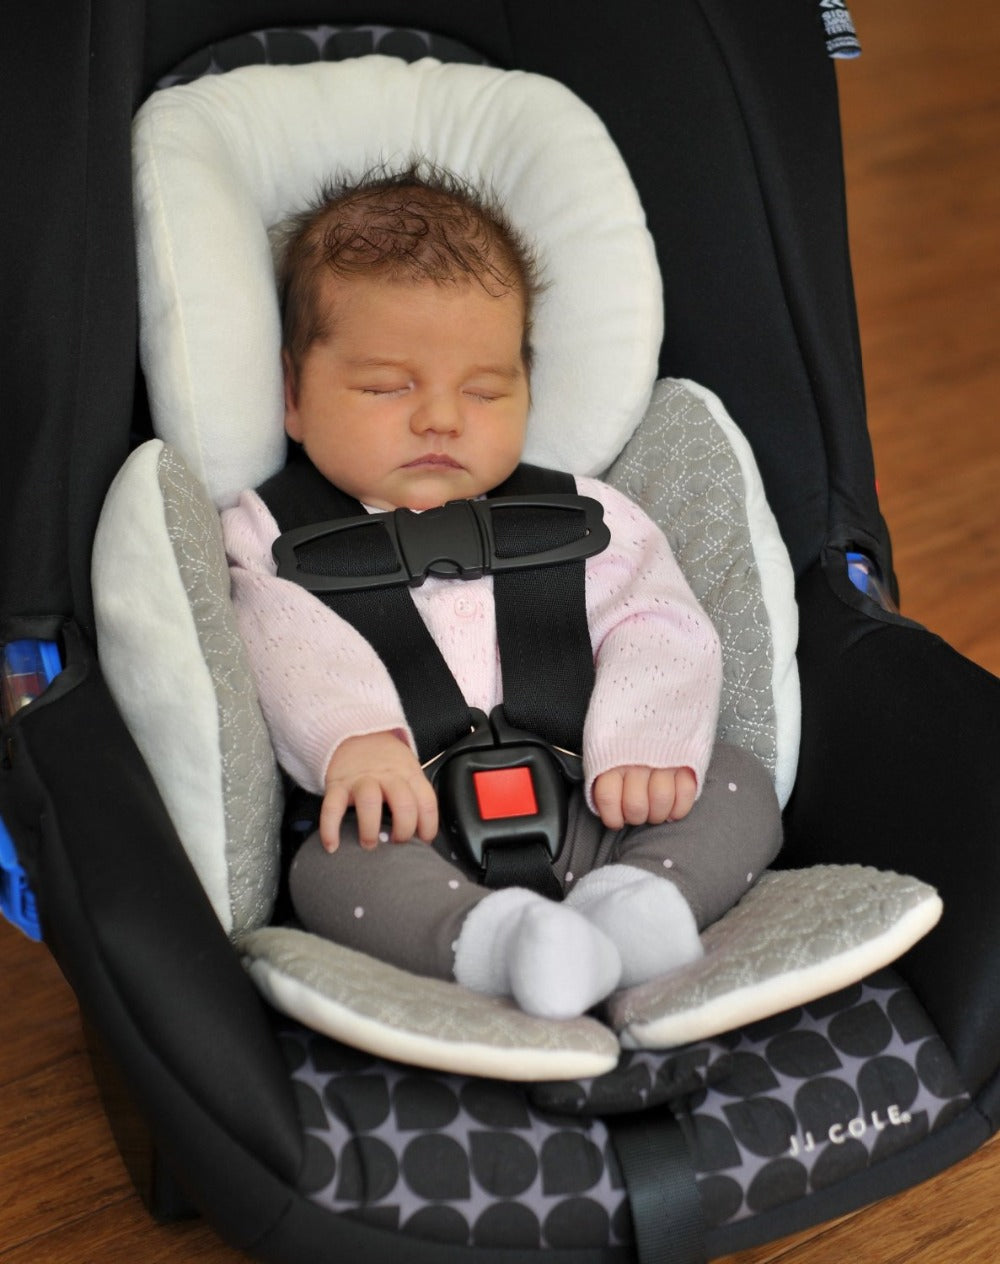 Baby Stroller and Car Seat Accessories - kidsstoreefw